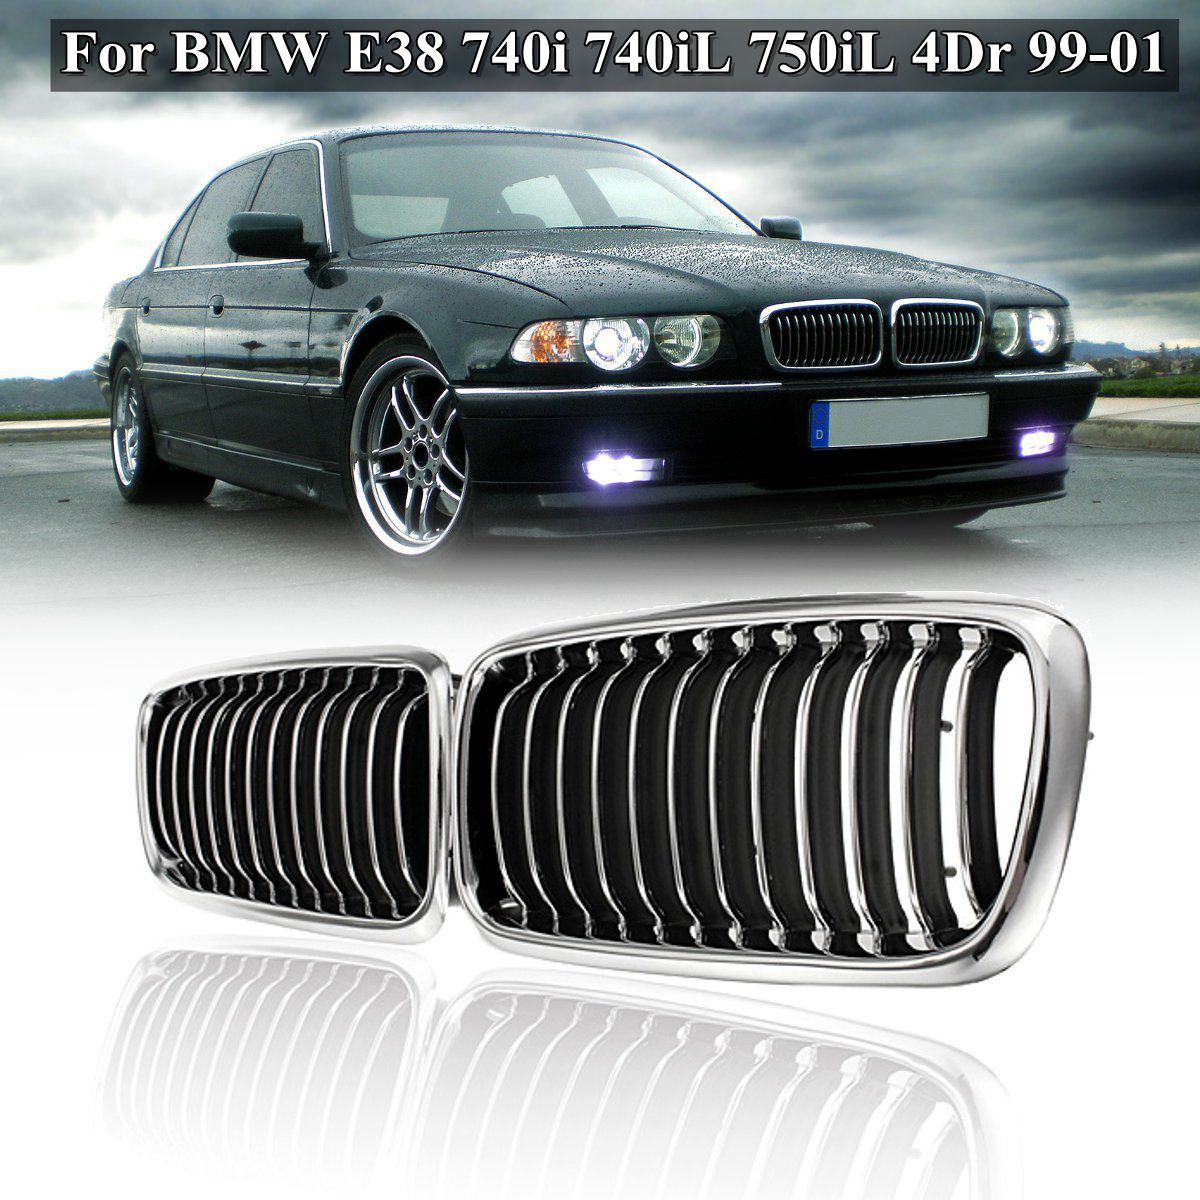 Pair Matte Black Chrome Front Grill Grille For BMW E38 740i 740iL 750iL 4Dr 1999 2000 2001 Car Styling Racing Grills